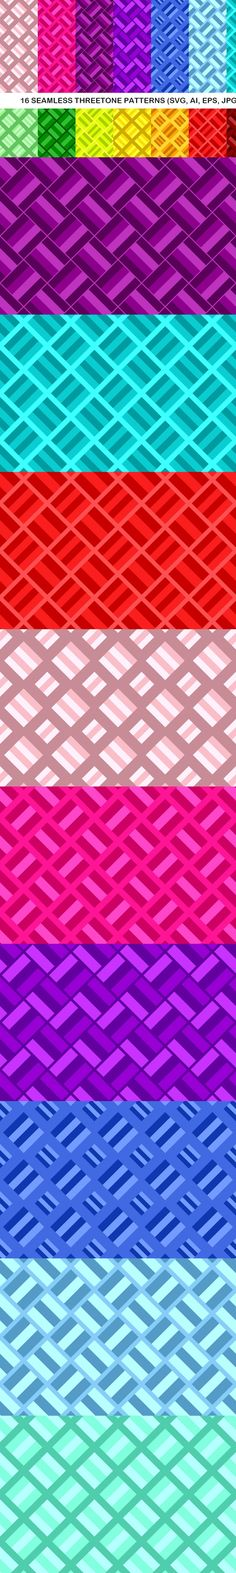 16 Seamless ThreeTone Square Patterns #abstract #geometry #patterns #AbstractDesign #squares #PatternSale #pattern #BackgroundGraphic #squarepattern #square #GeometricBackgrounds #GeometricDesign #squarepattern #GeometricBackground #abstract #SquareBackgrounds #BackgroundDesign #geometry #CheapVectorBackgrounds